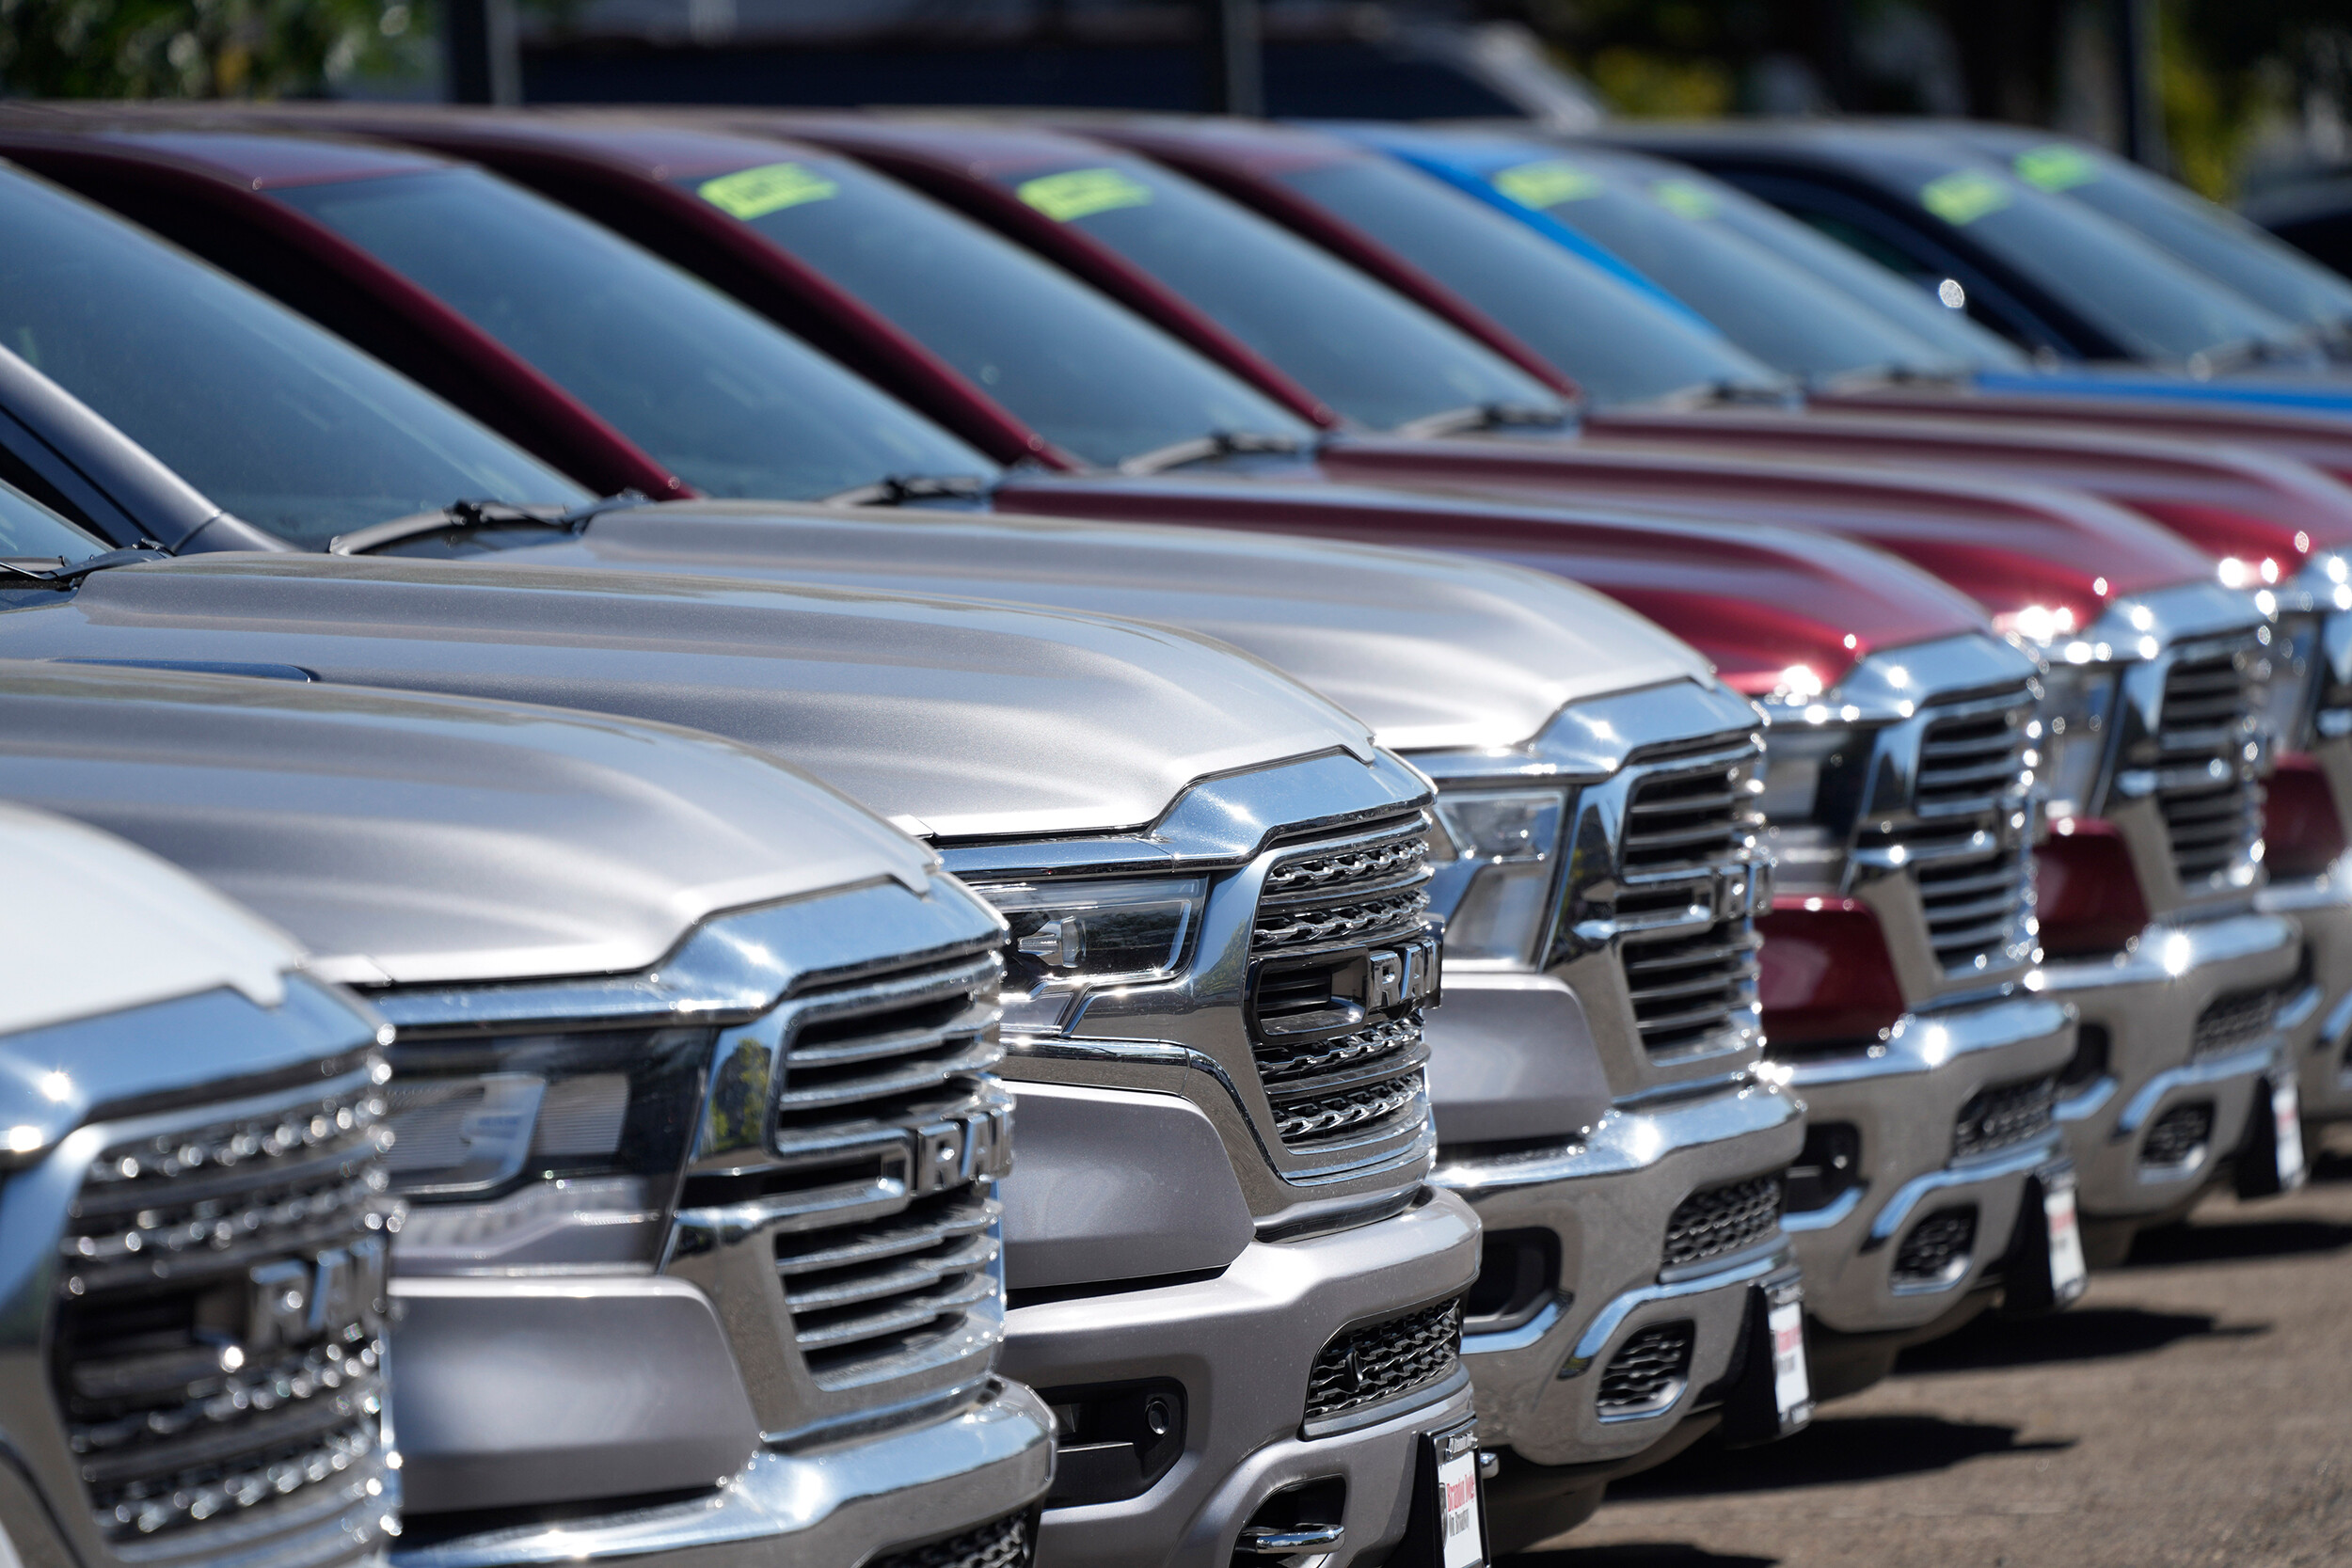 <i>David Zalubowski/AP</i><br/>A lone line of unsold 2021 pickup trucks in an empty storage lot at a Dodge Ram dealership on Sept. 12 in Littleton